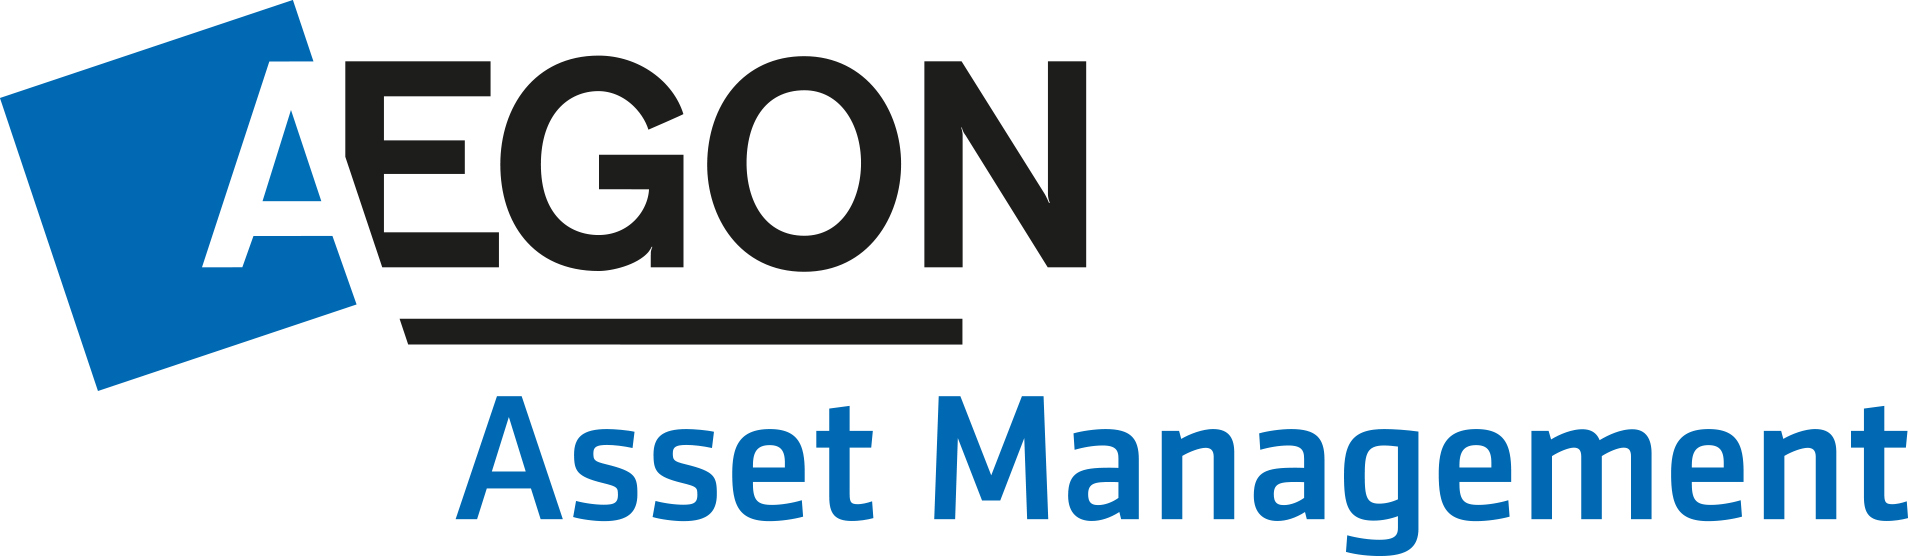 Aegon Asset Management